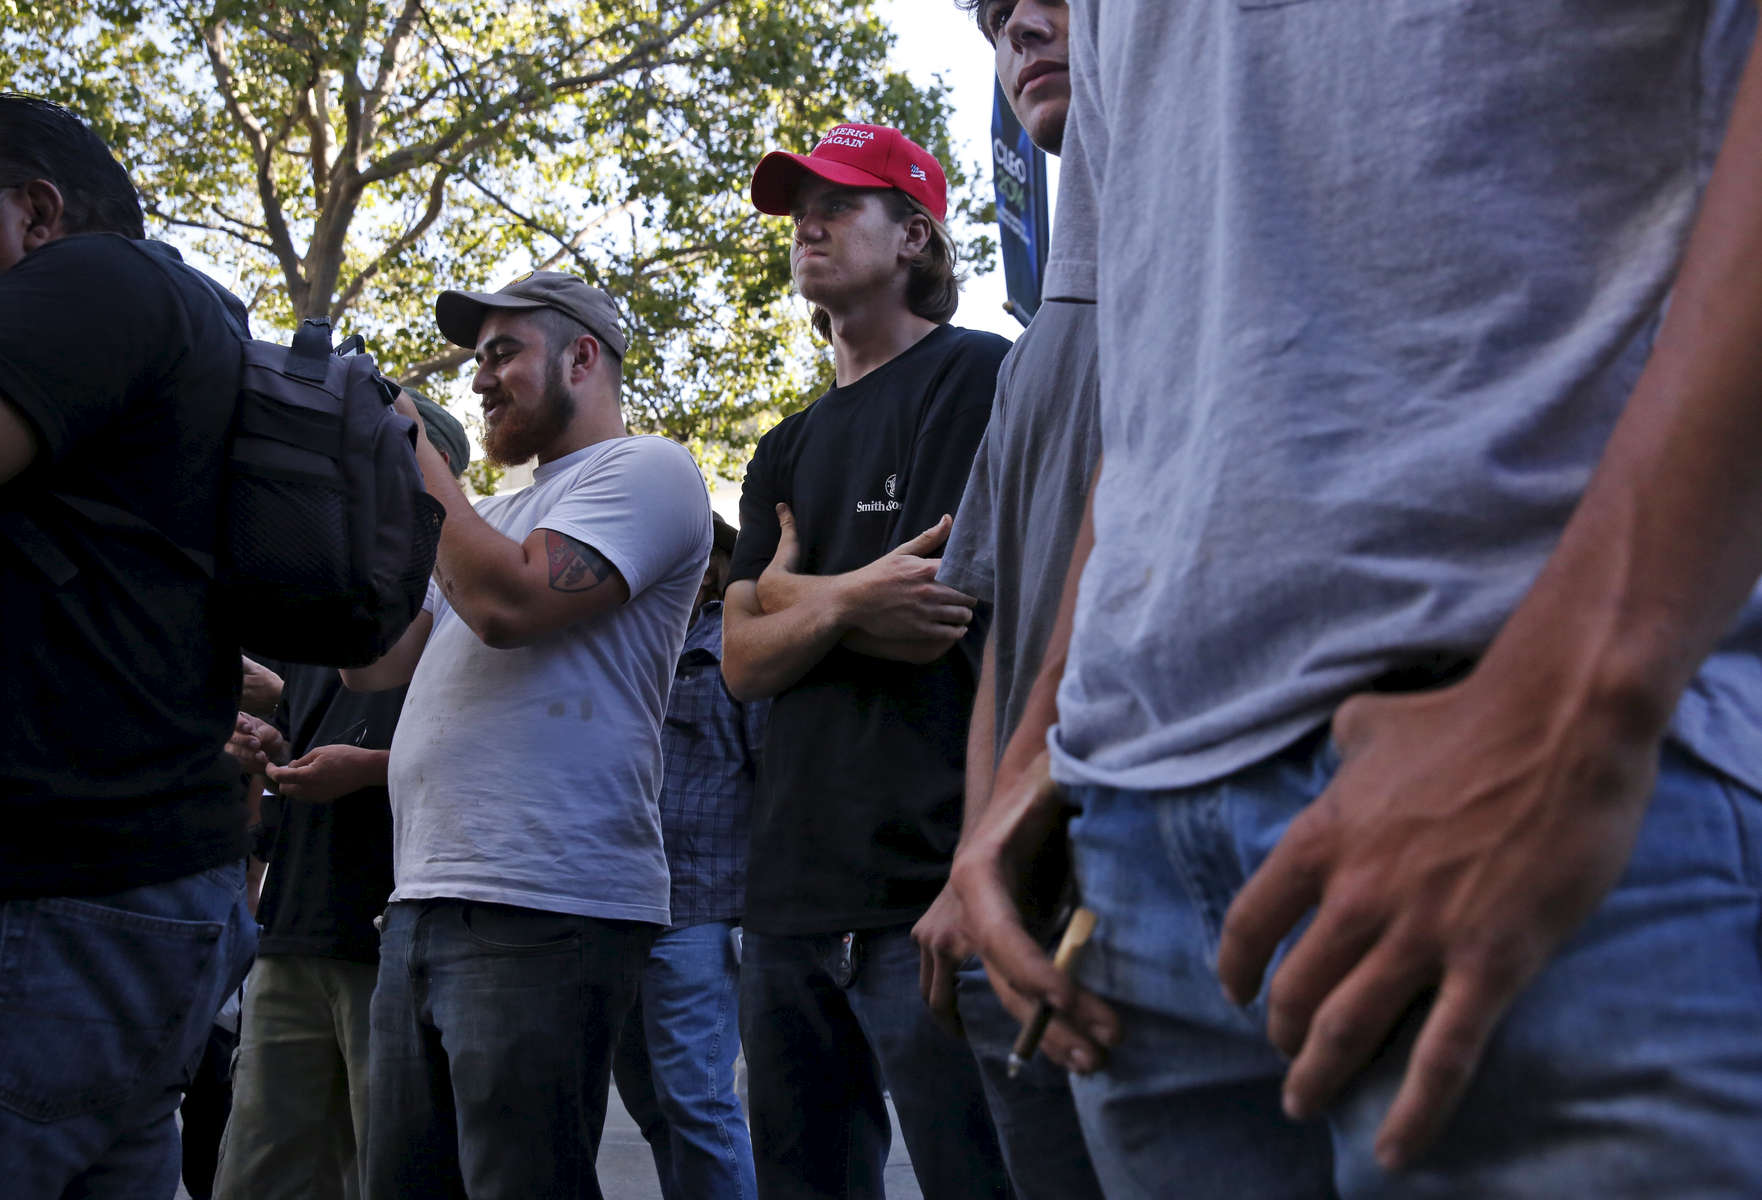 Trump supporters including Ian Churchill, 19, center, and Brendan Ortman, 21, left, watch anti-Trump protesters near the convention center before presidential candidate Donald Trump held a campaign rally June 2, 2016 in downtown San Jose, Calif.